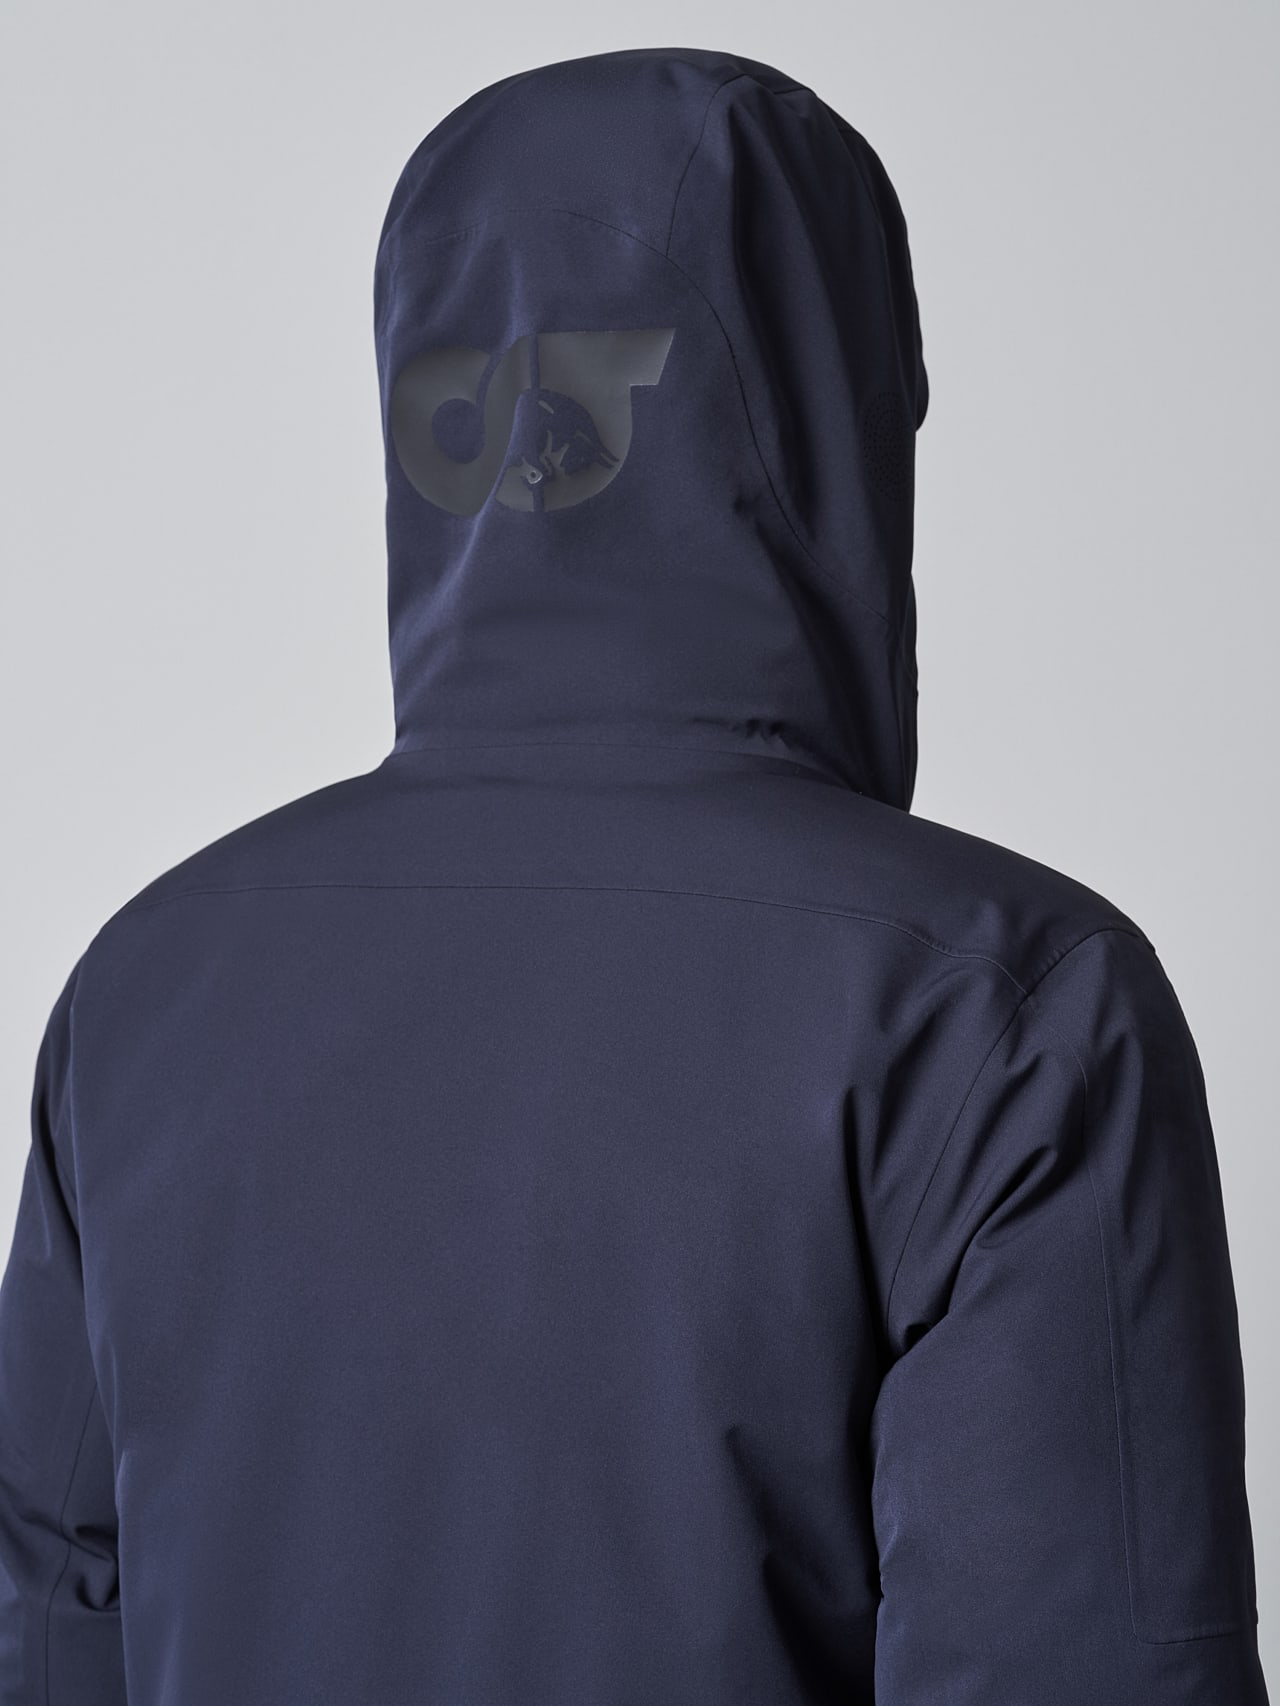 KOOV V6.Y5.02 Packable and Waterproof Winter Parka navy scene7.view.10.name Alpha Tauri